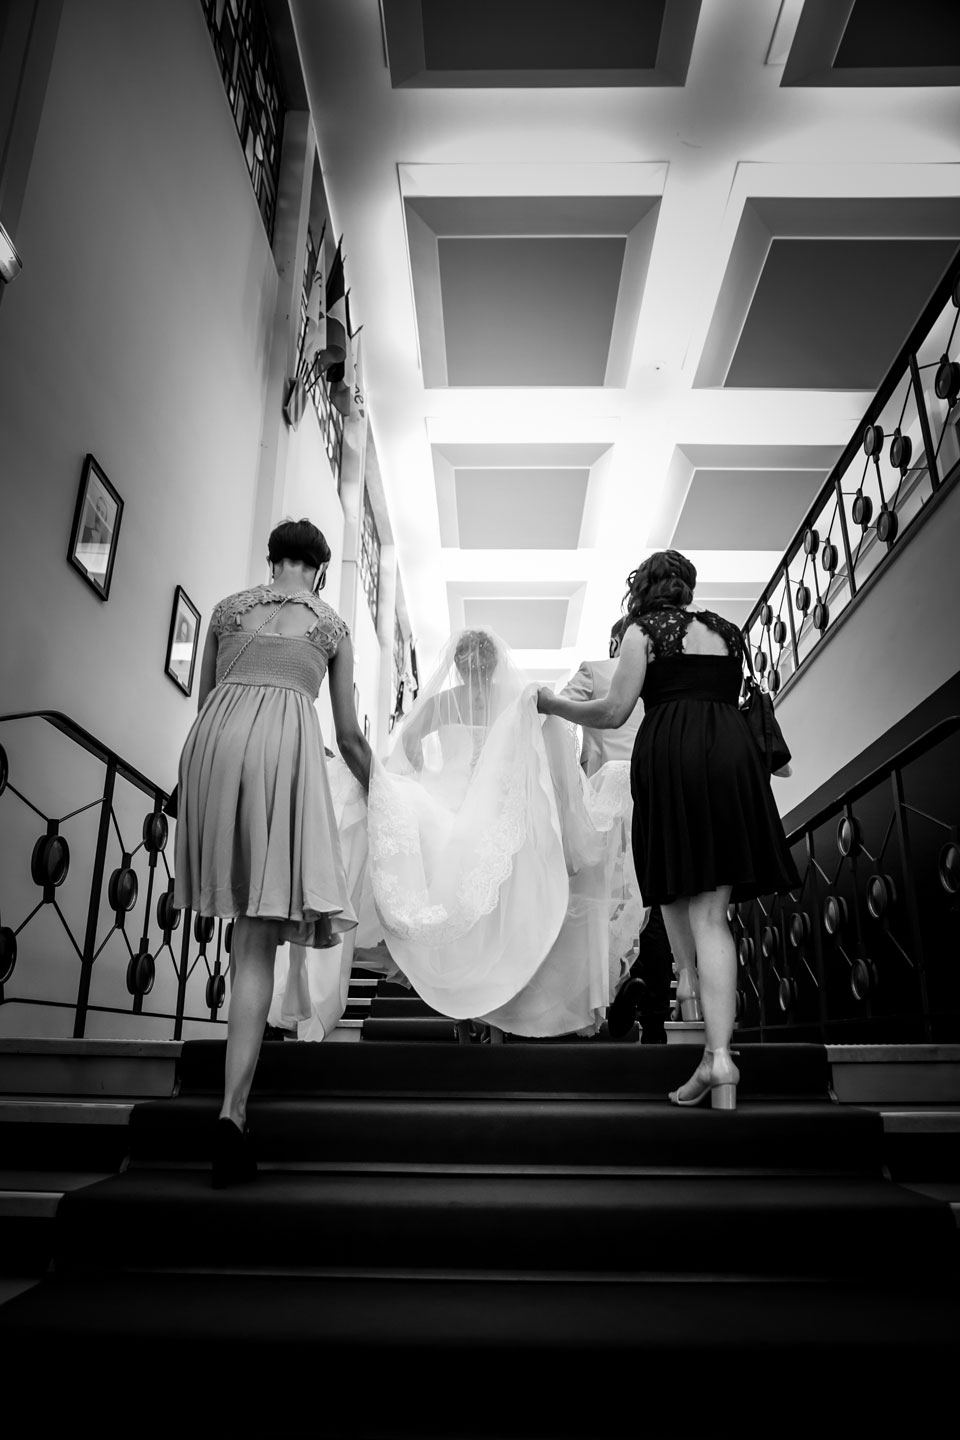 20200912-mariage-ophelie-alexandre-008